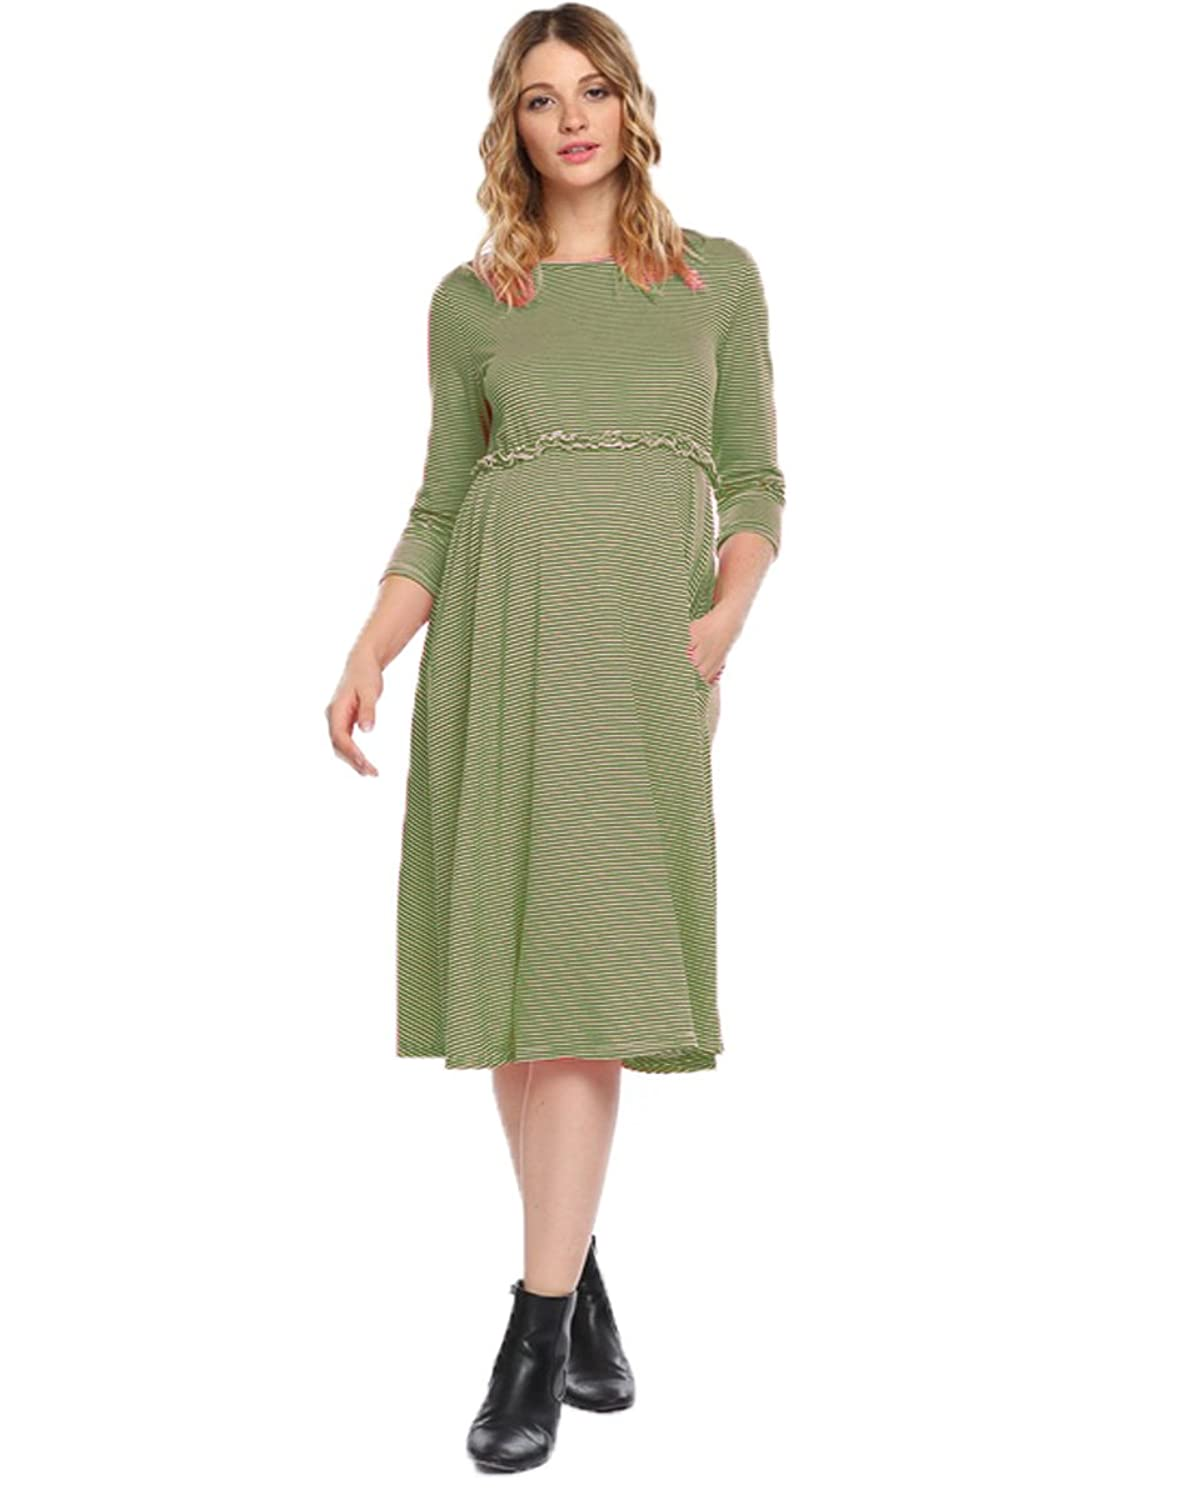 21f50d7a25d This dress also features side pockets and elastic to keep you and your baby  comfortable all season long!and a flattering empire waist with ruffle